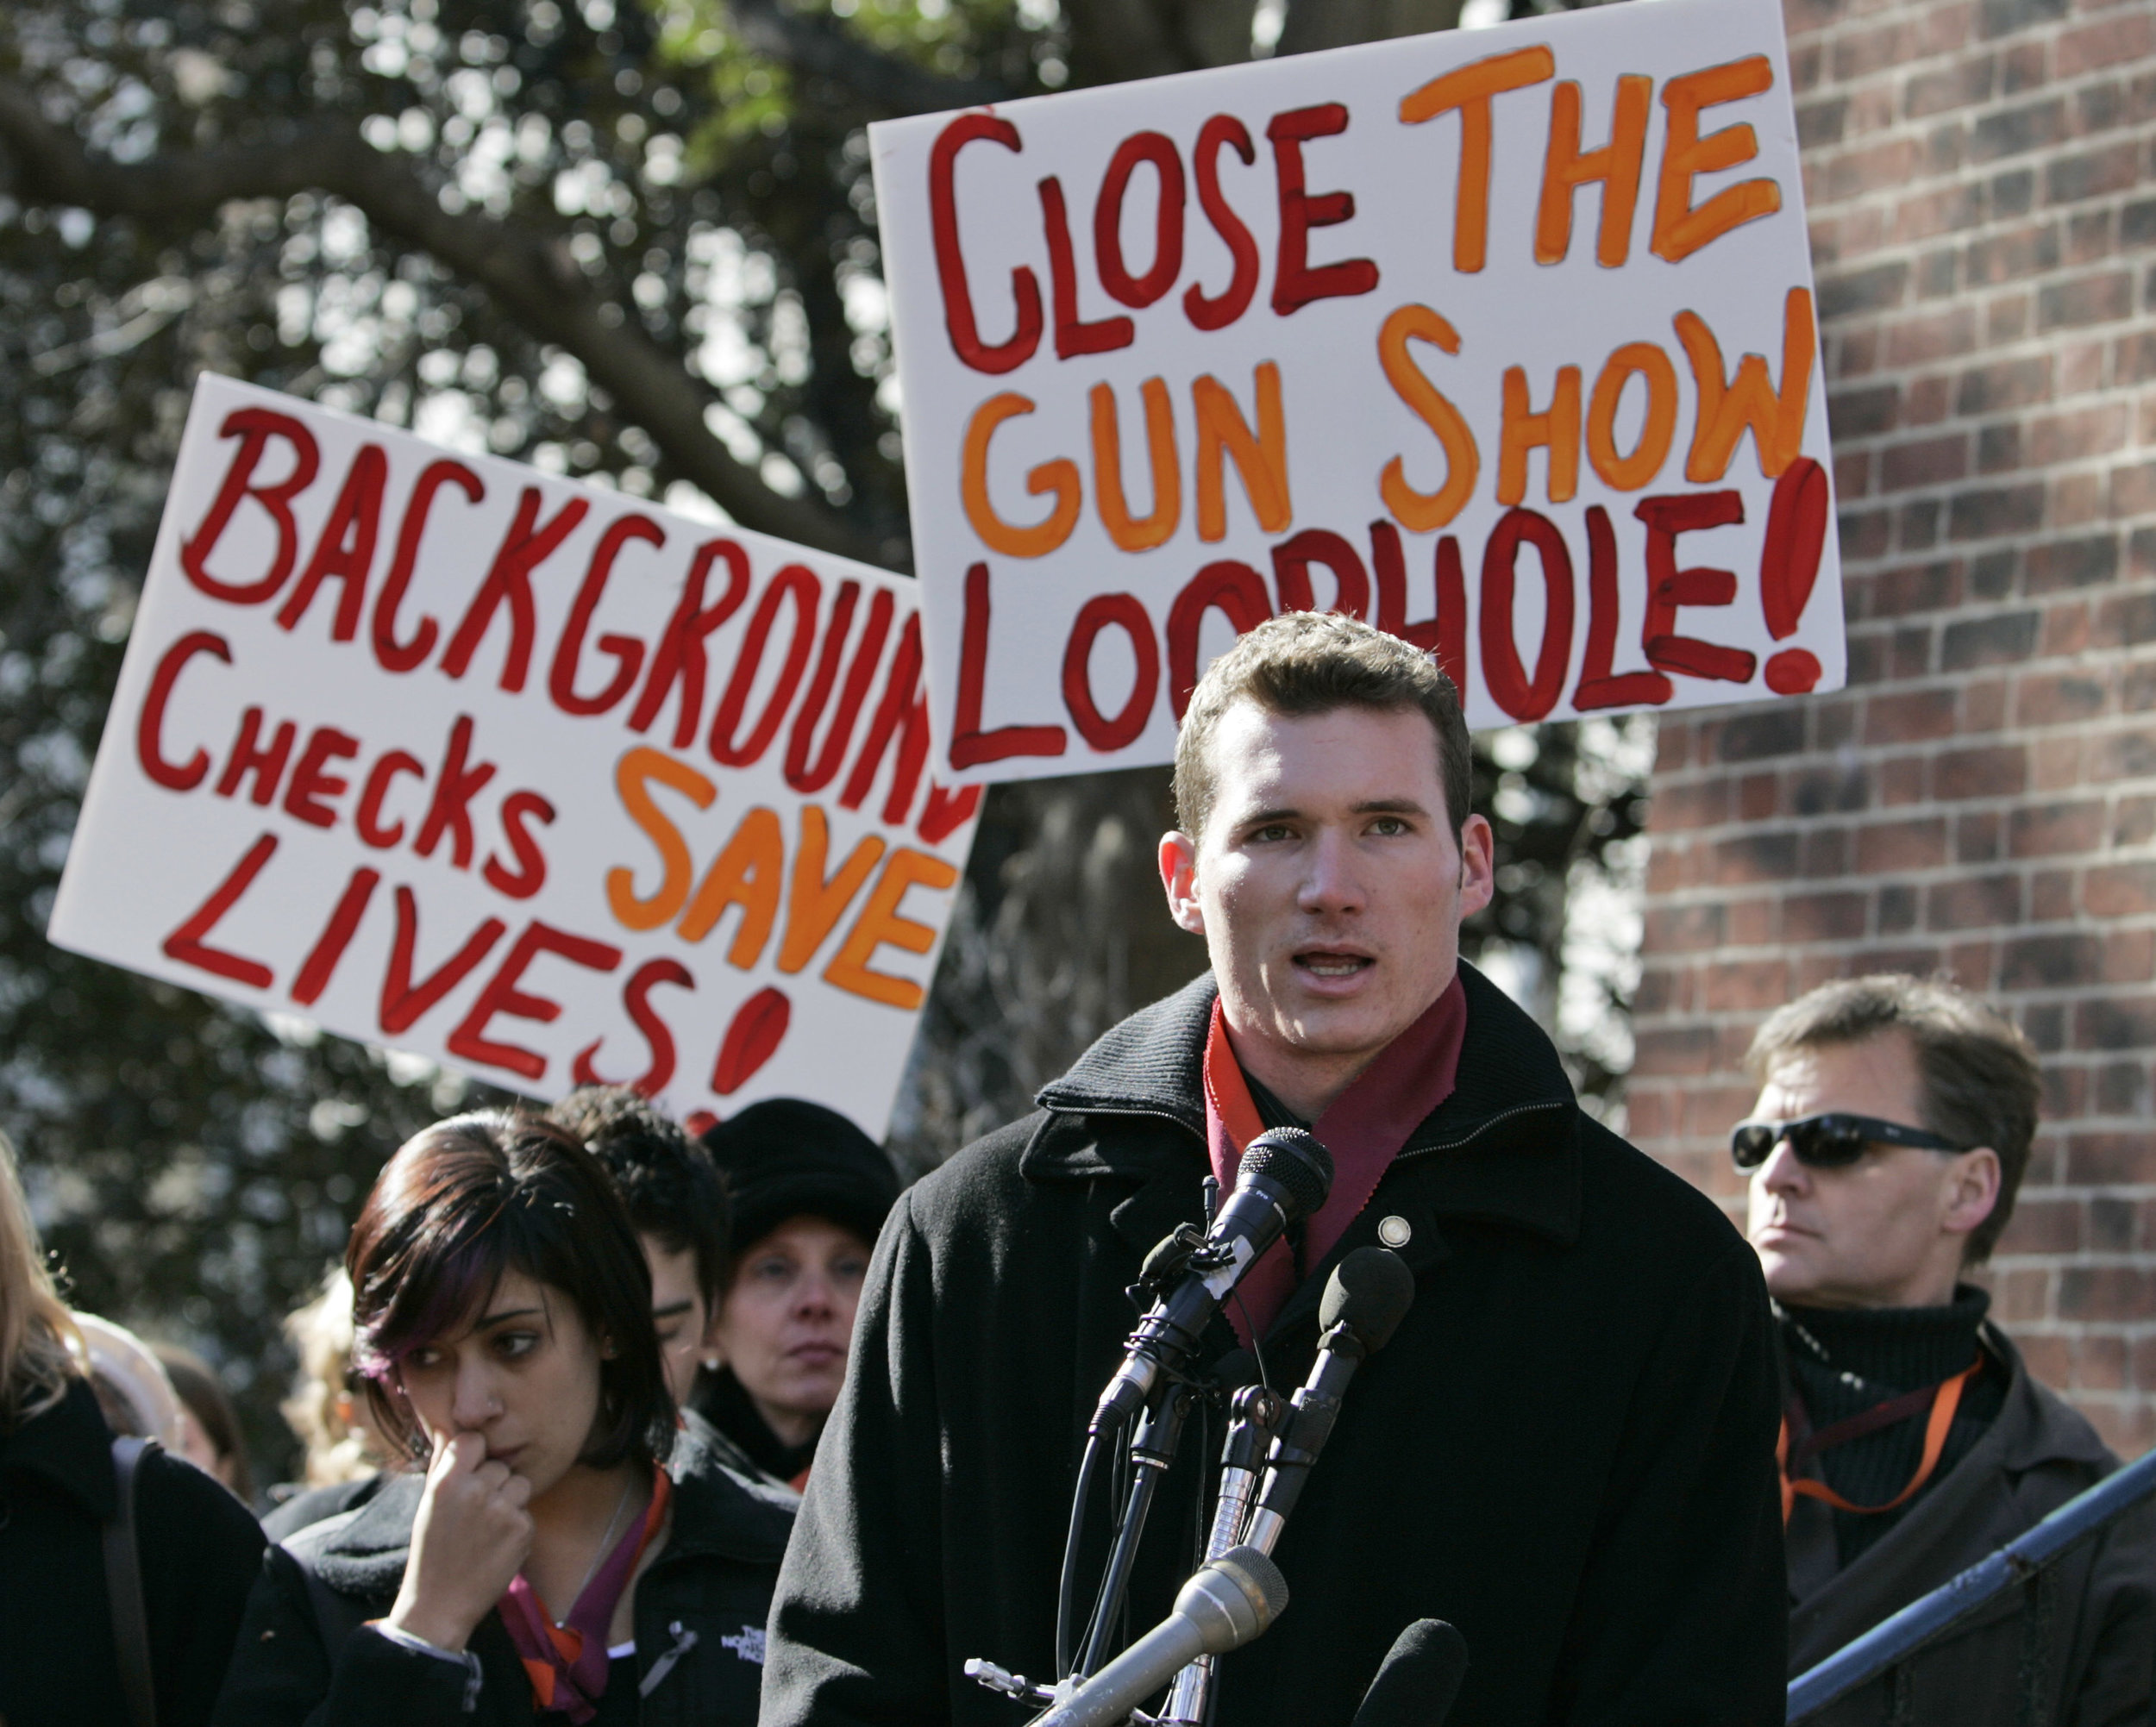 Colin Goddard spoke at a gun safety rally at Richmond's Capitol Square in 2008. (Steve Helber, Associated Press)